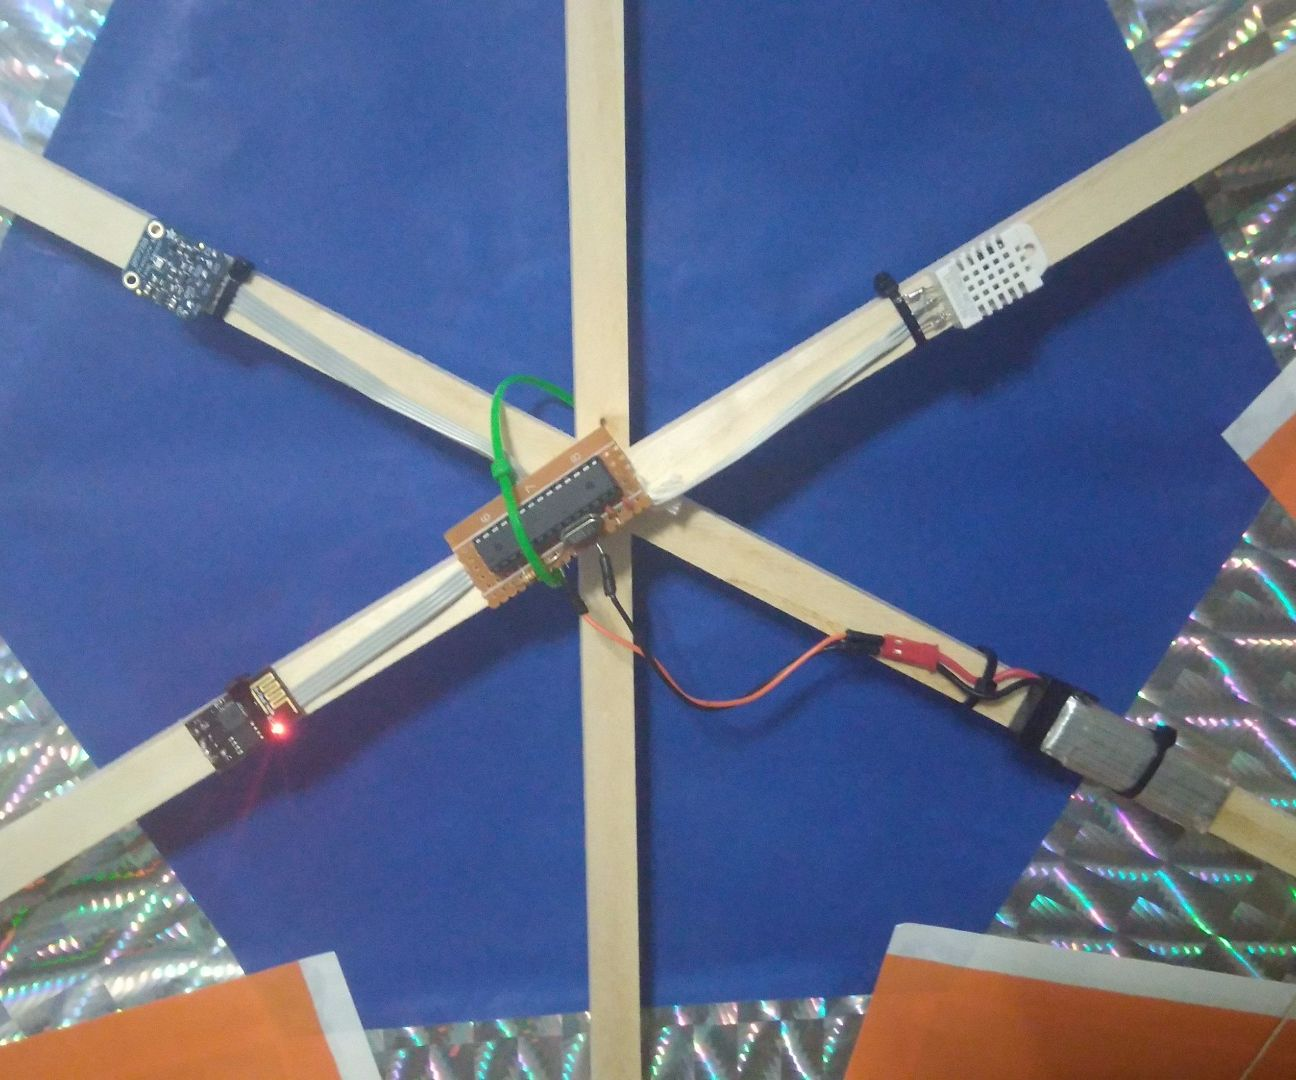 Let's go fly a kite... with an Arduino on it!